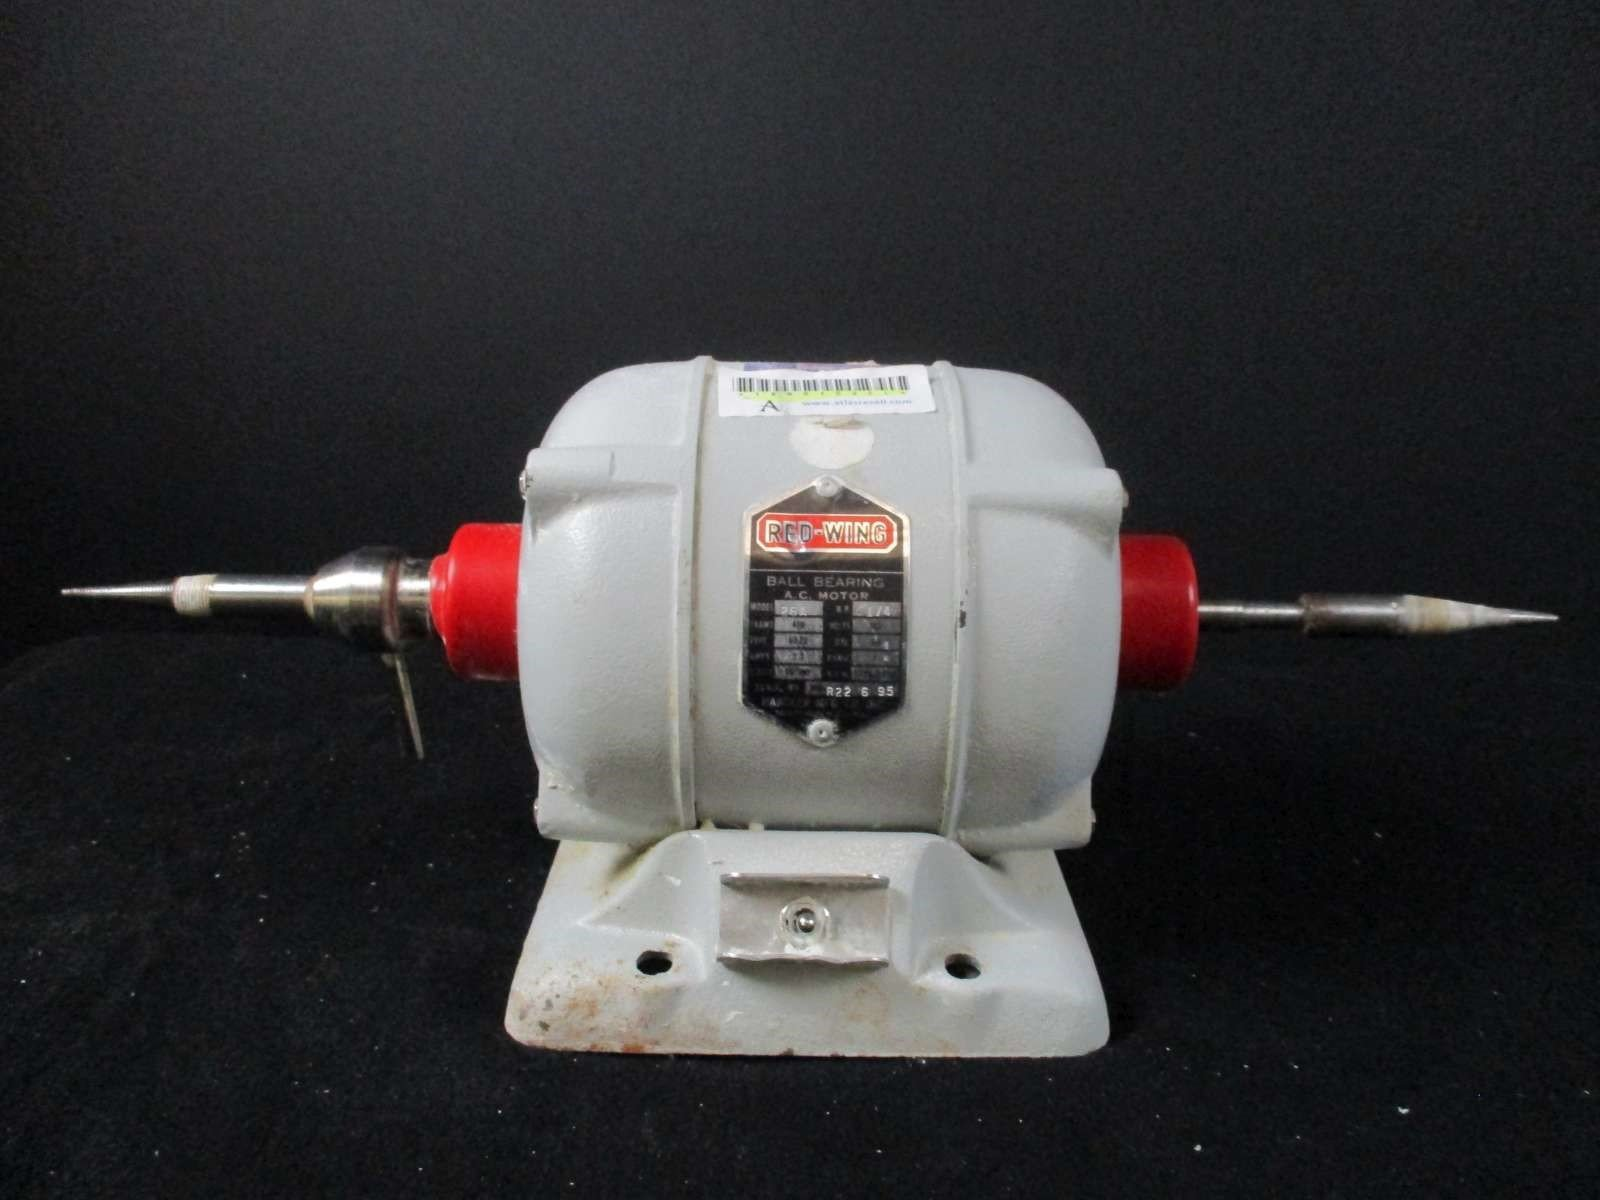 #26A HANDLER - Red Wing Lathe- 110volts 1/4 HP- Low shaft- 1725/3452 R 101105 Us Dental Depot by Handler (Image #1)